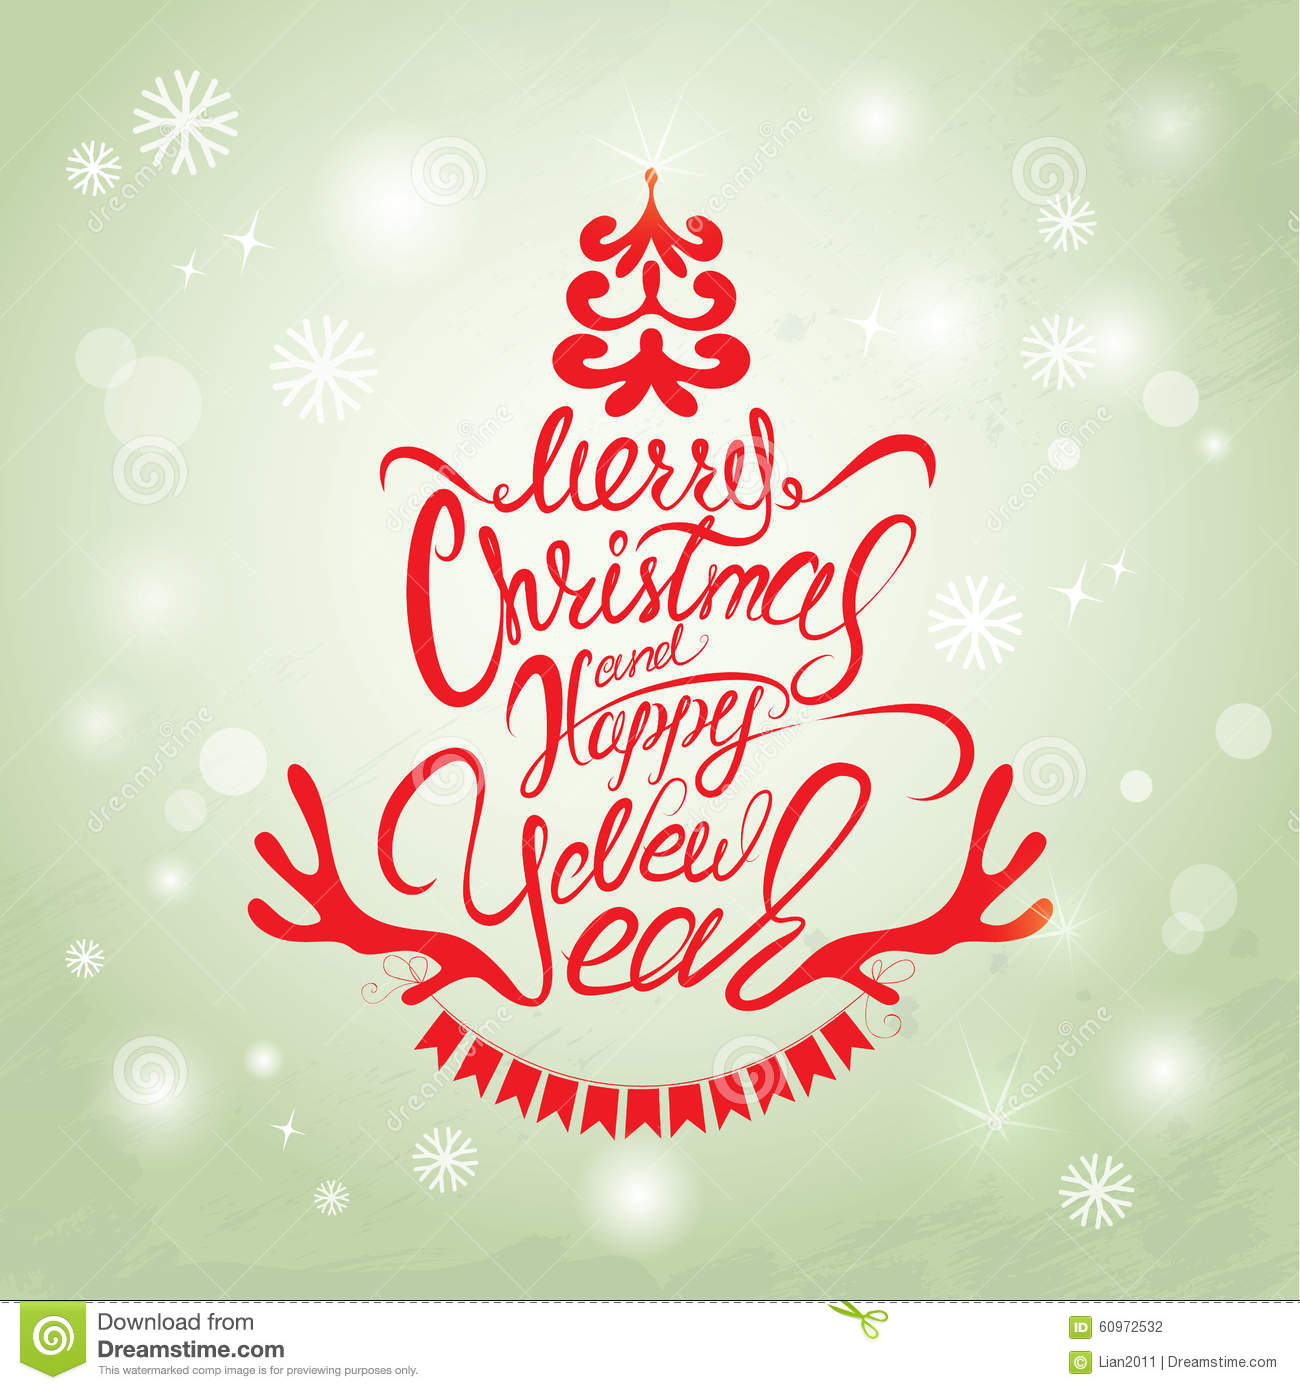 Merry Christmas And Happy New Year Card, Calligraphy Handwritten ...